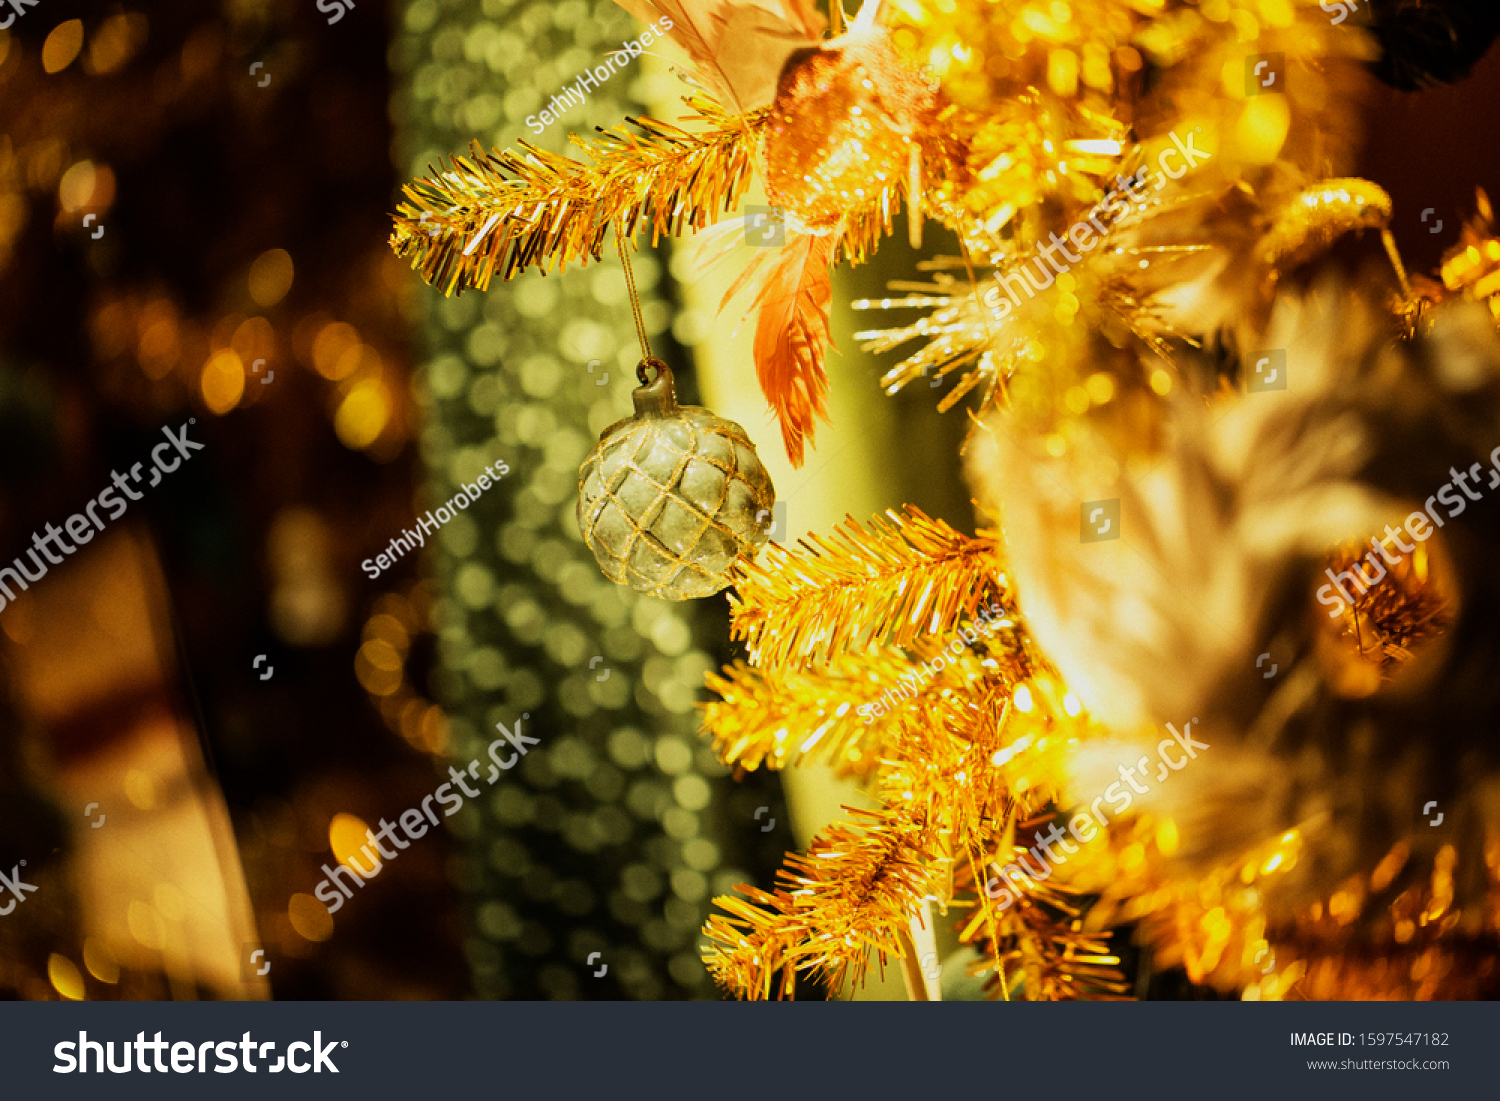 Exquisite Christmas Decorations On Christmas Tree Stock Photo Edit Now 1597547182